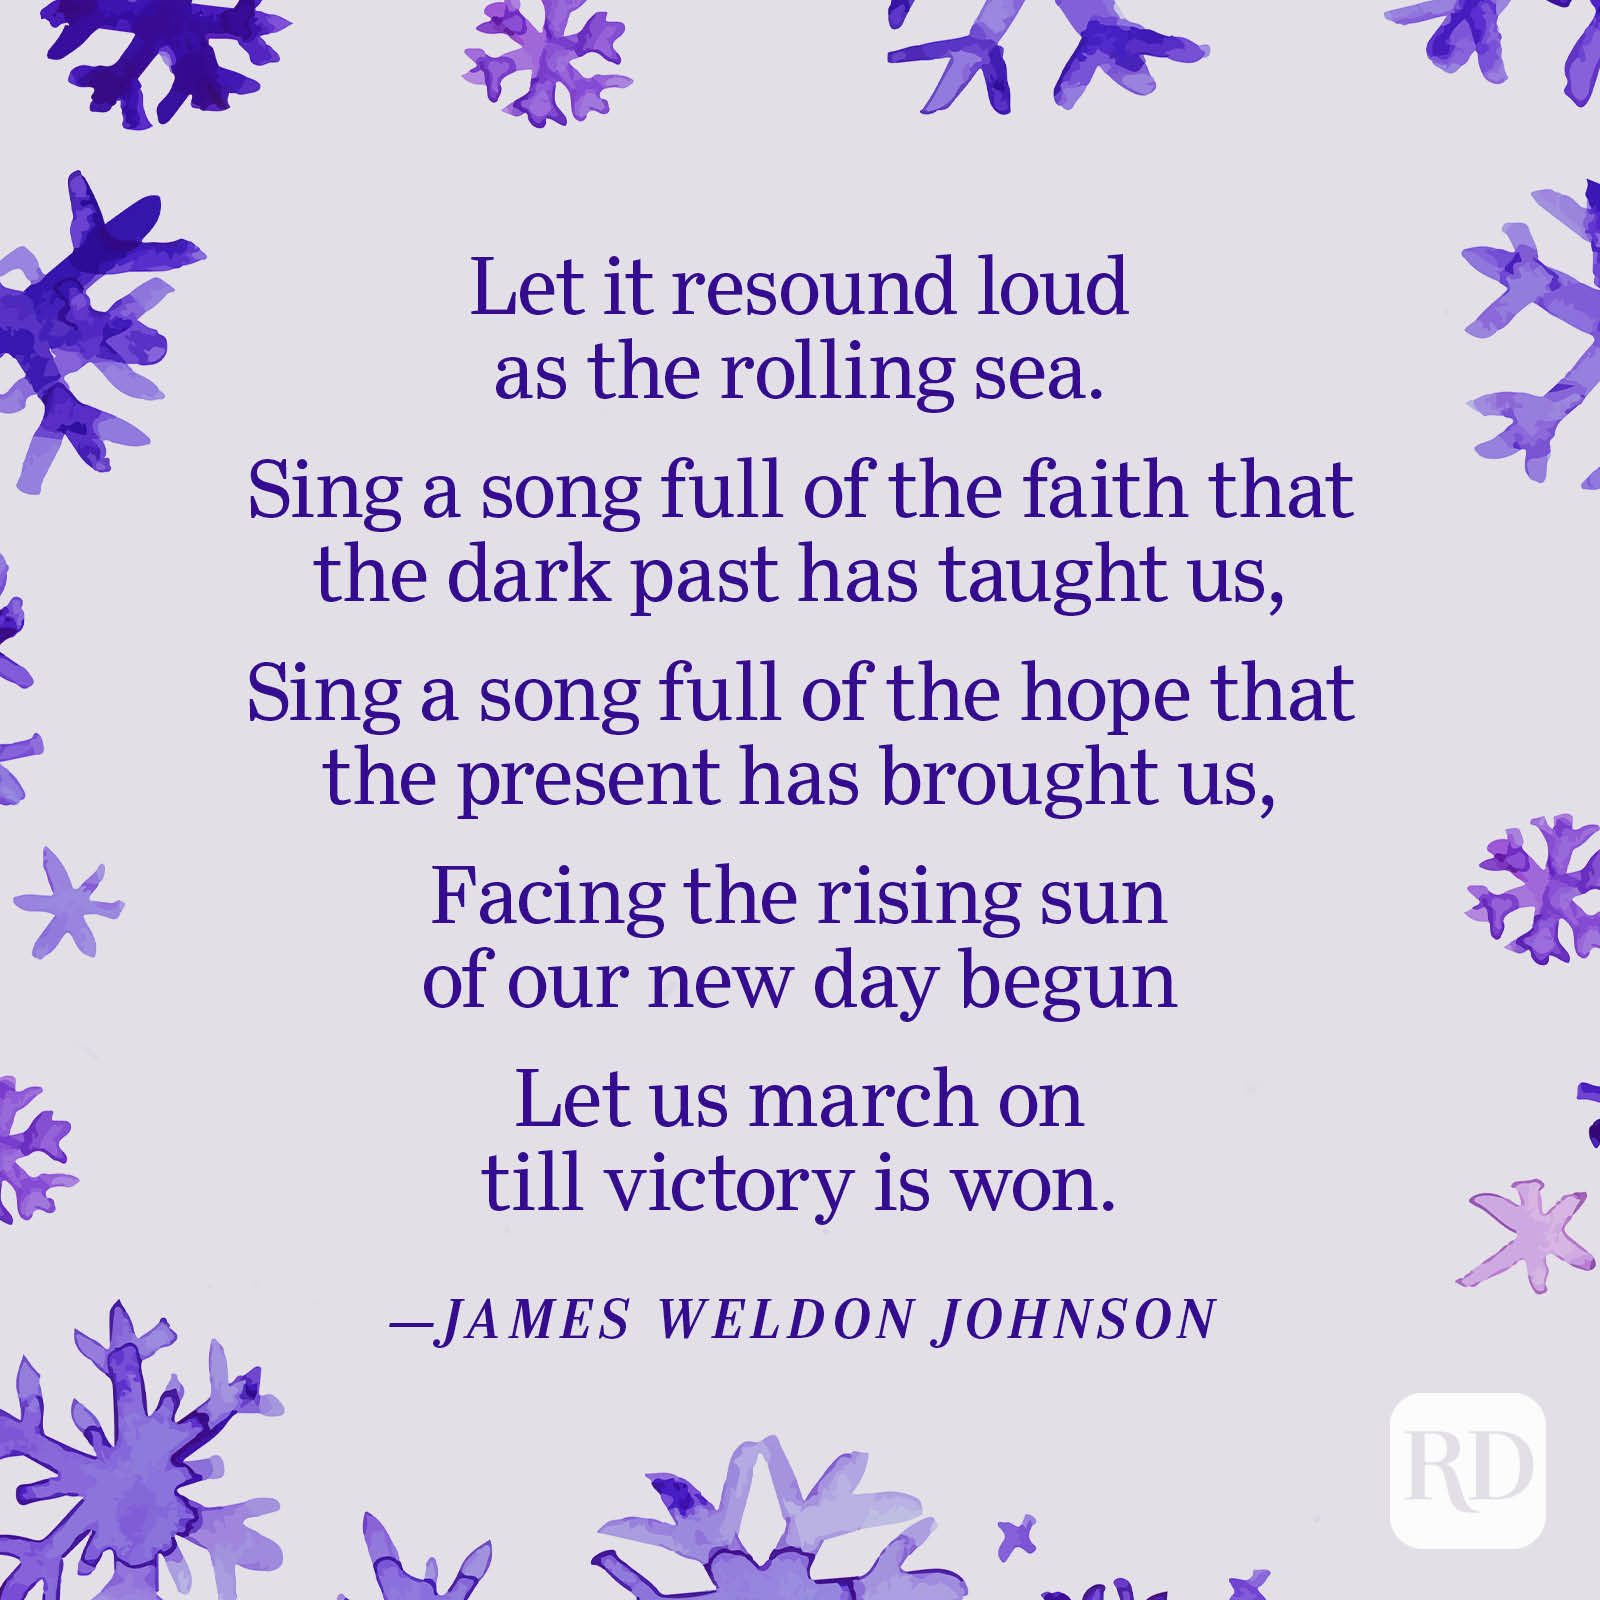 """""""Let it resound loud as the rolling sea. Sing a song full of the faith that the dark past has taught us, Sing a song full of the hope that the present has brought us, Facing the rising sun of our new day begun Let us march on till victory is won."""" —James Weldon Johnson"""